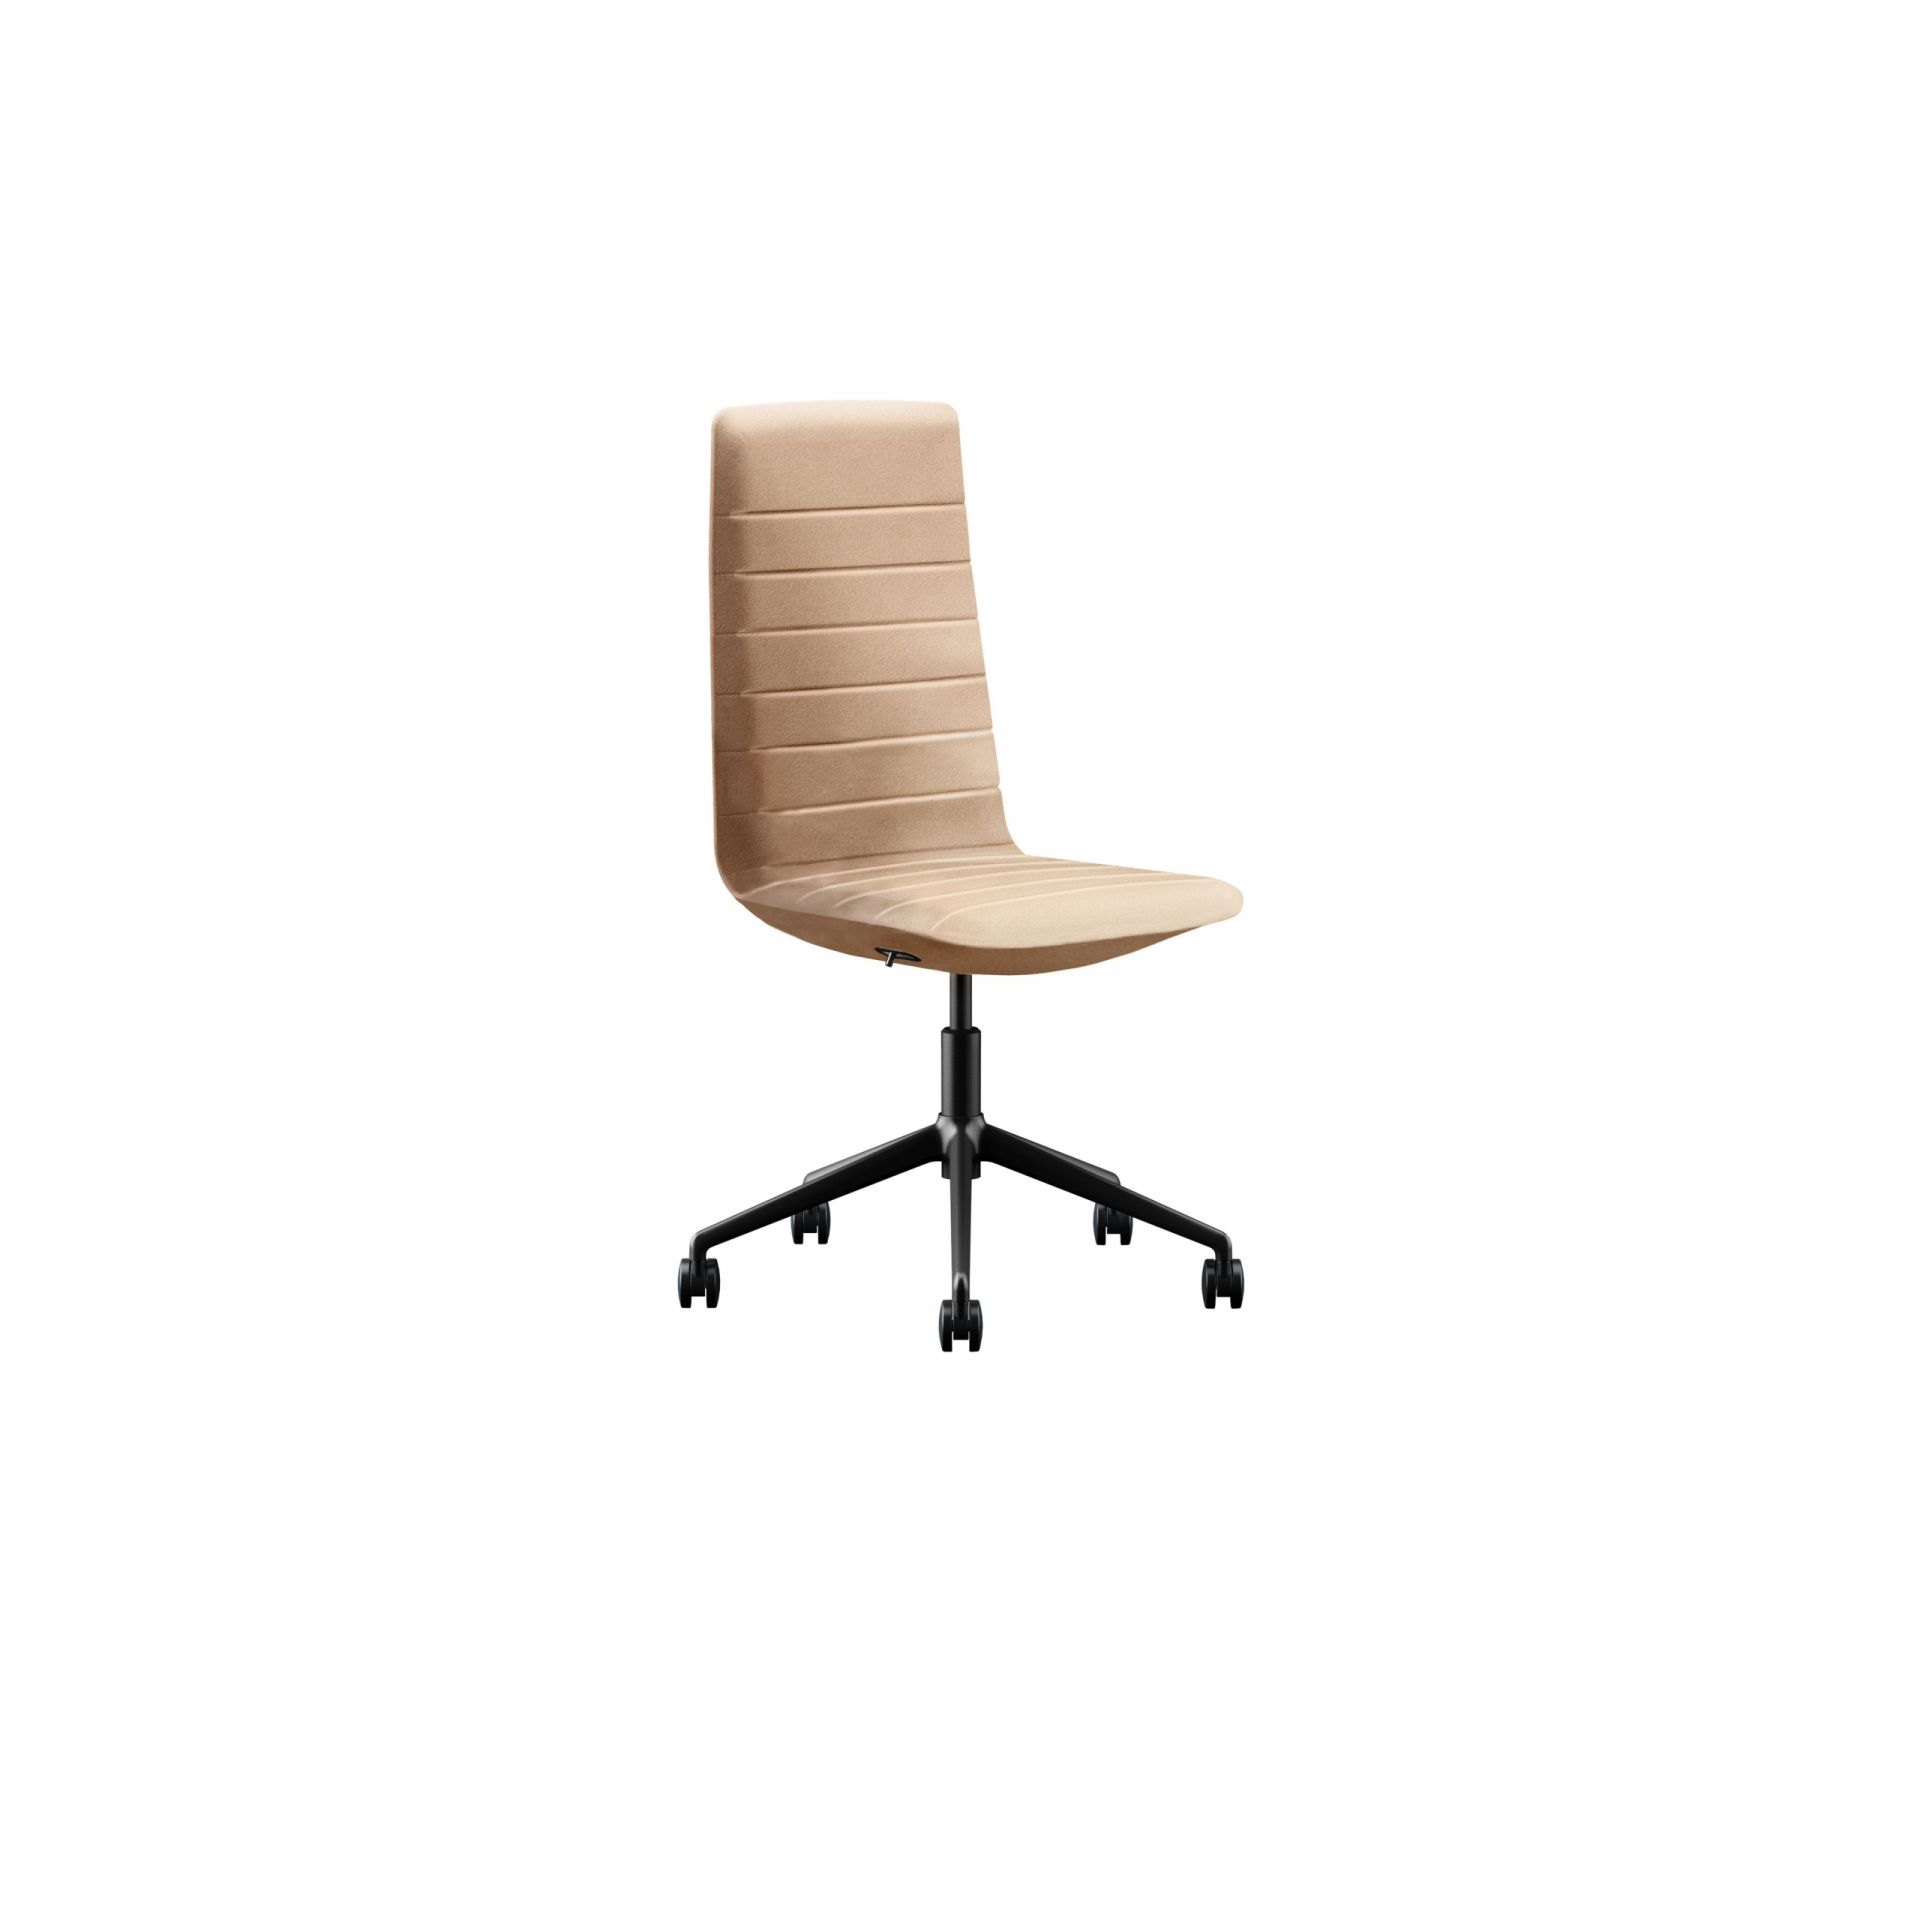 Favor Chair with swivel base product image 2